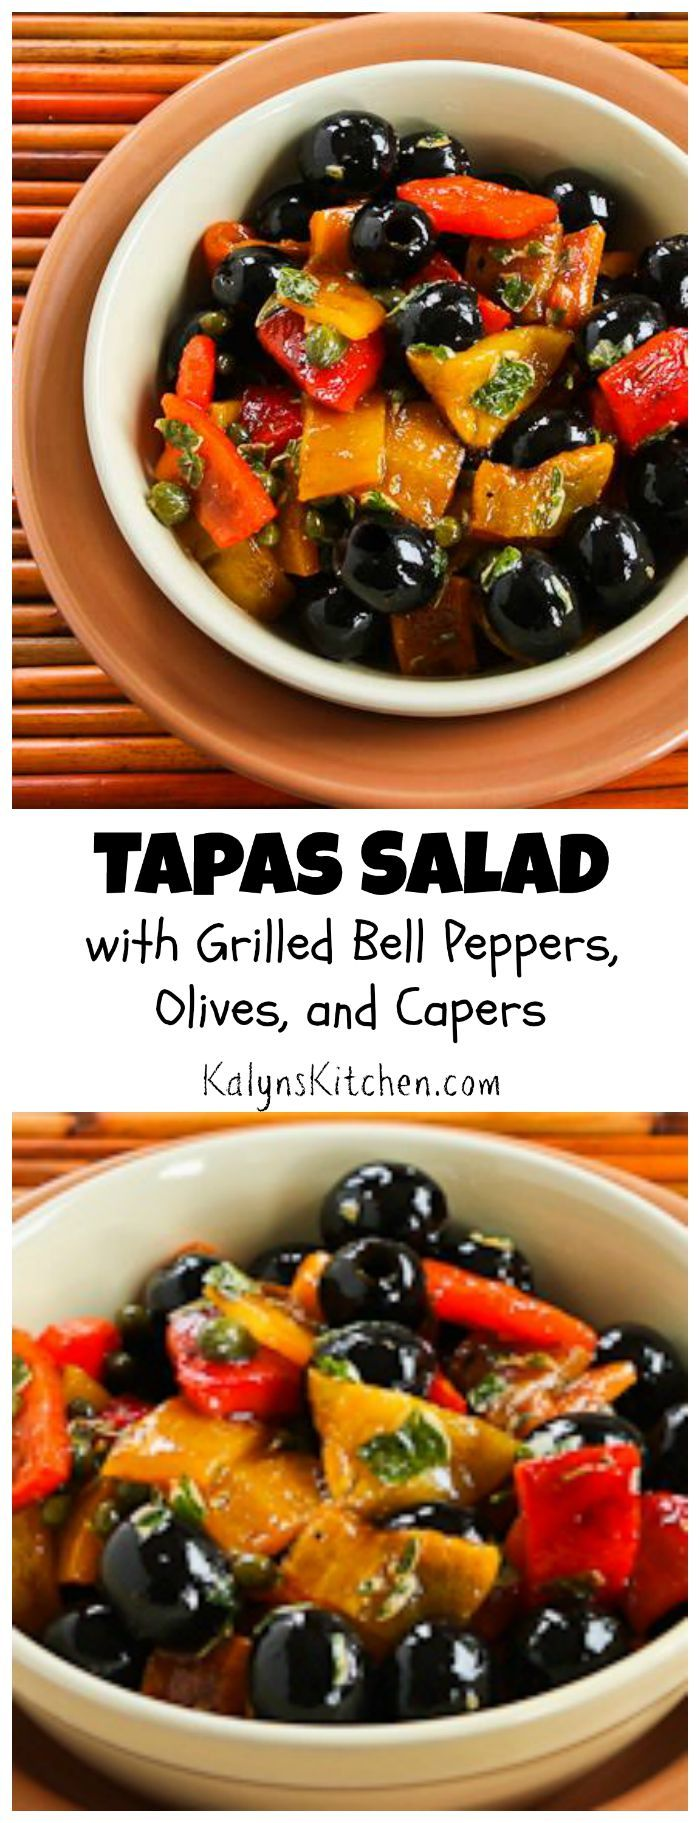 This Tapas Salad with Grilled Bell Peppers, Olives, and Capers is a perfect #LowCarb and #Paleo summer treat. Grilling the peppers is simple and adds fabulous flavor! [from KalynsKitchen.com]